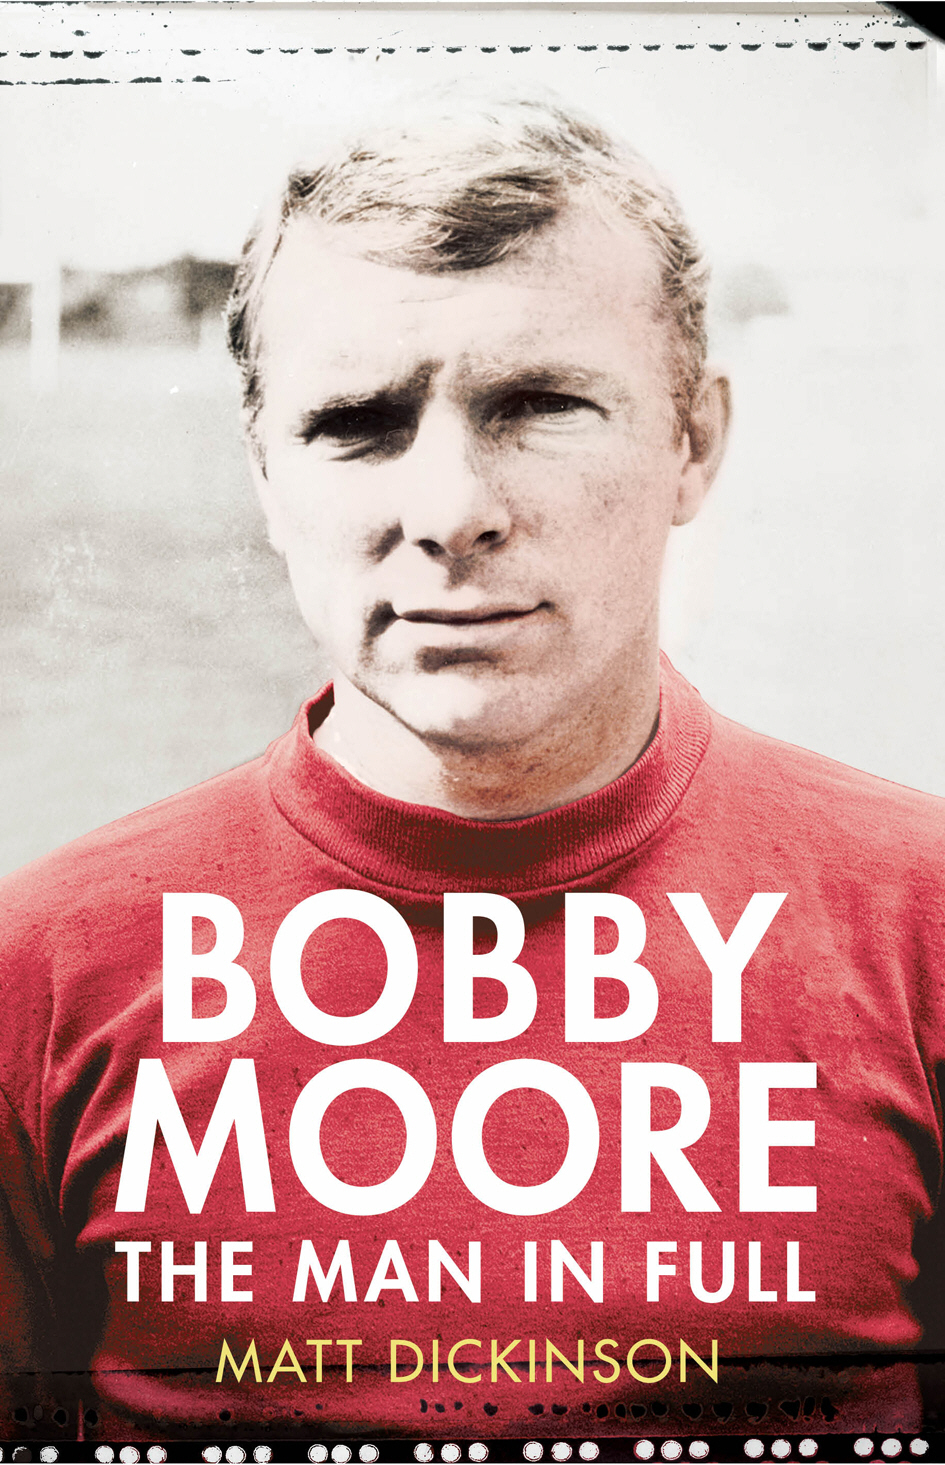 Bobby Moore The Man in Full